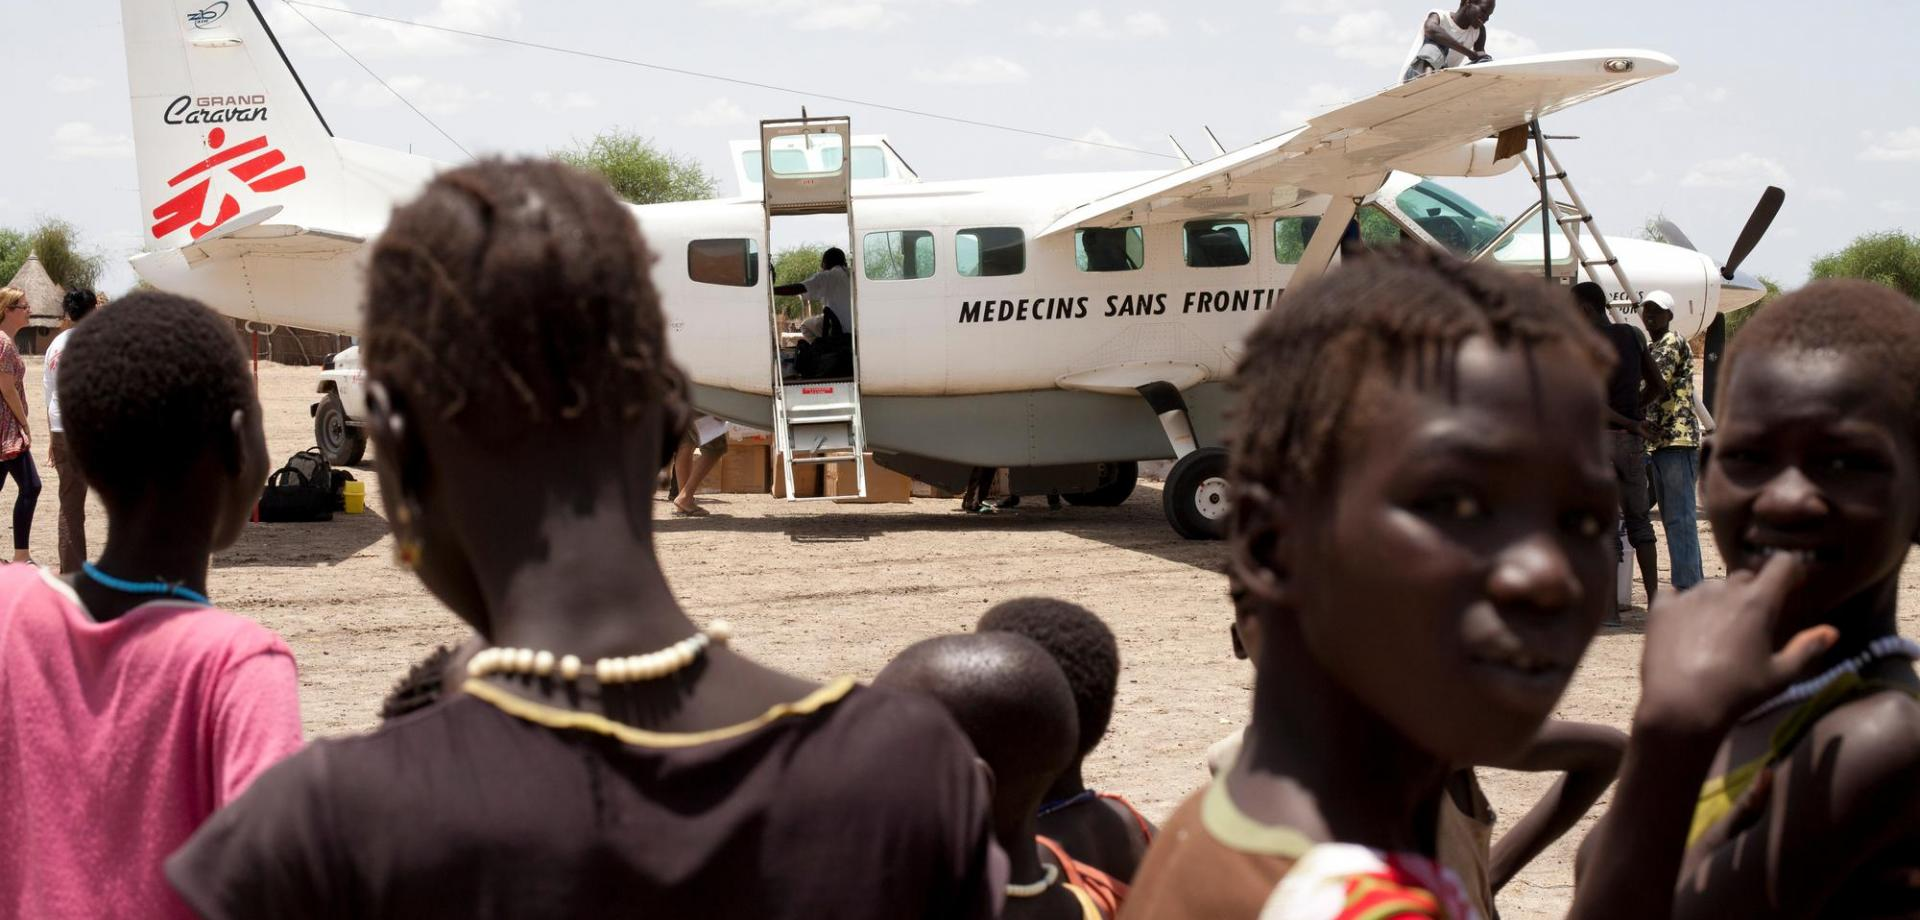 MSF logisticians unload supplies delivered by plane to Lankien, South Sudan. Isolated and difficult to reach by road, the project is often supplied by air.